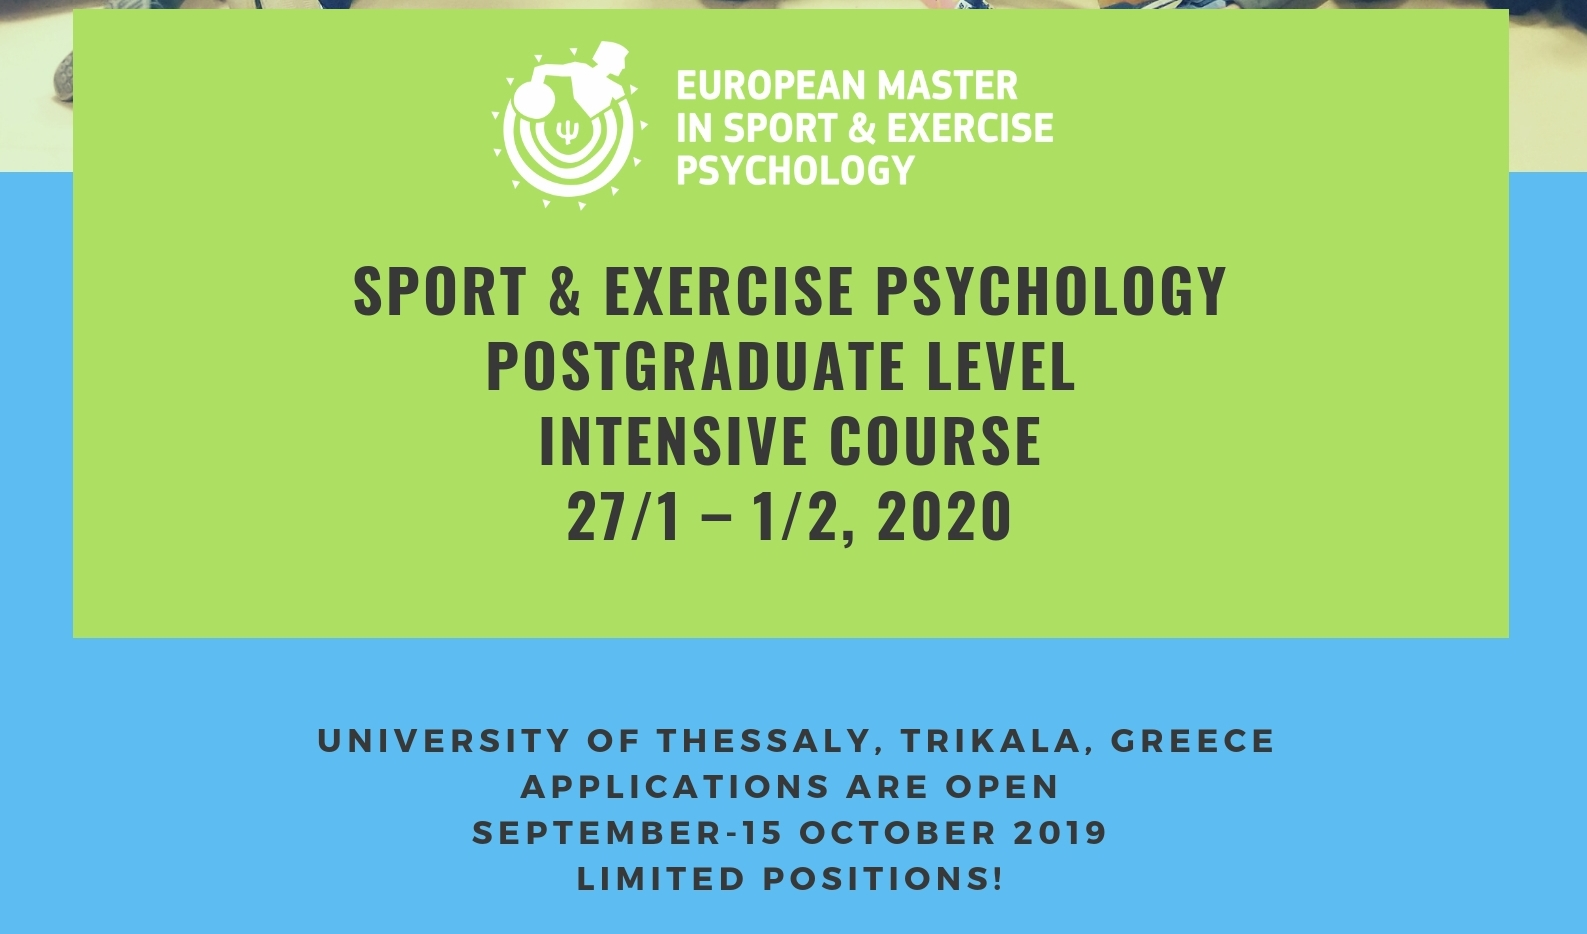 Intensive Course in Sport & Exercise Psychology 2020